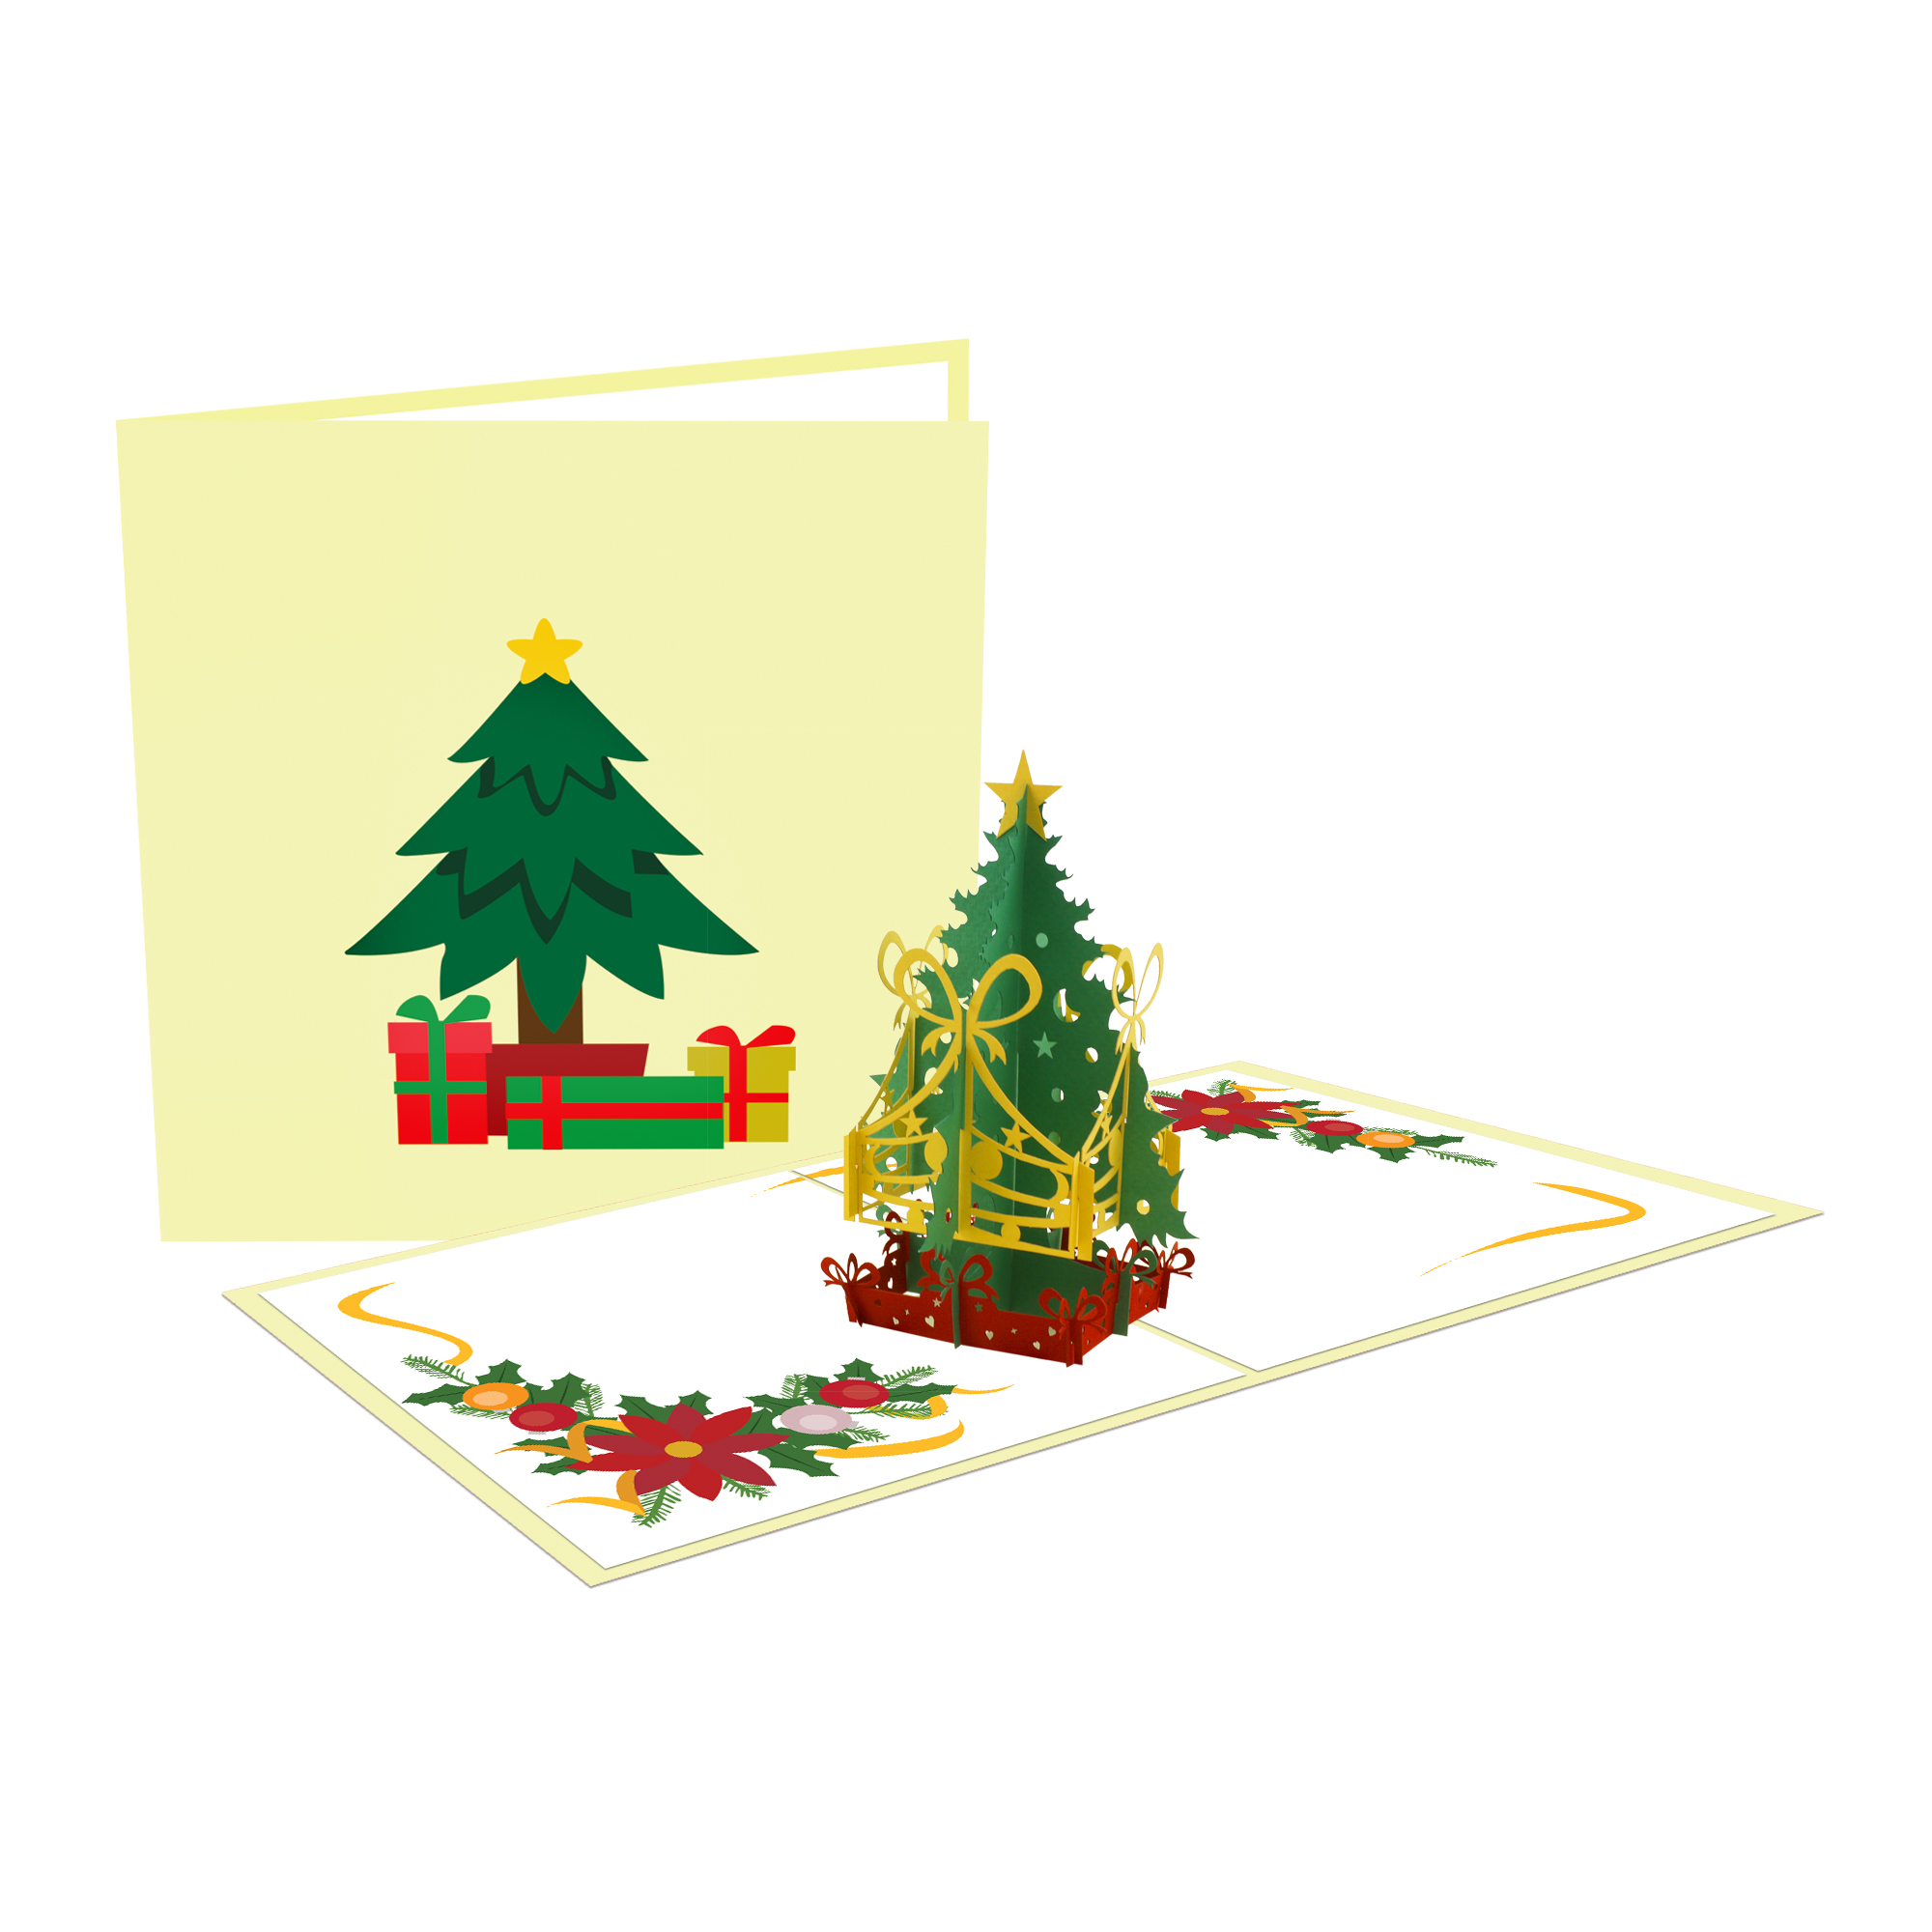 Pop up Christmas Card - Christmas tree